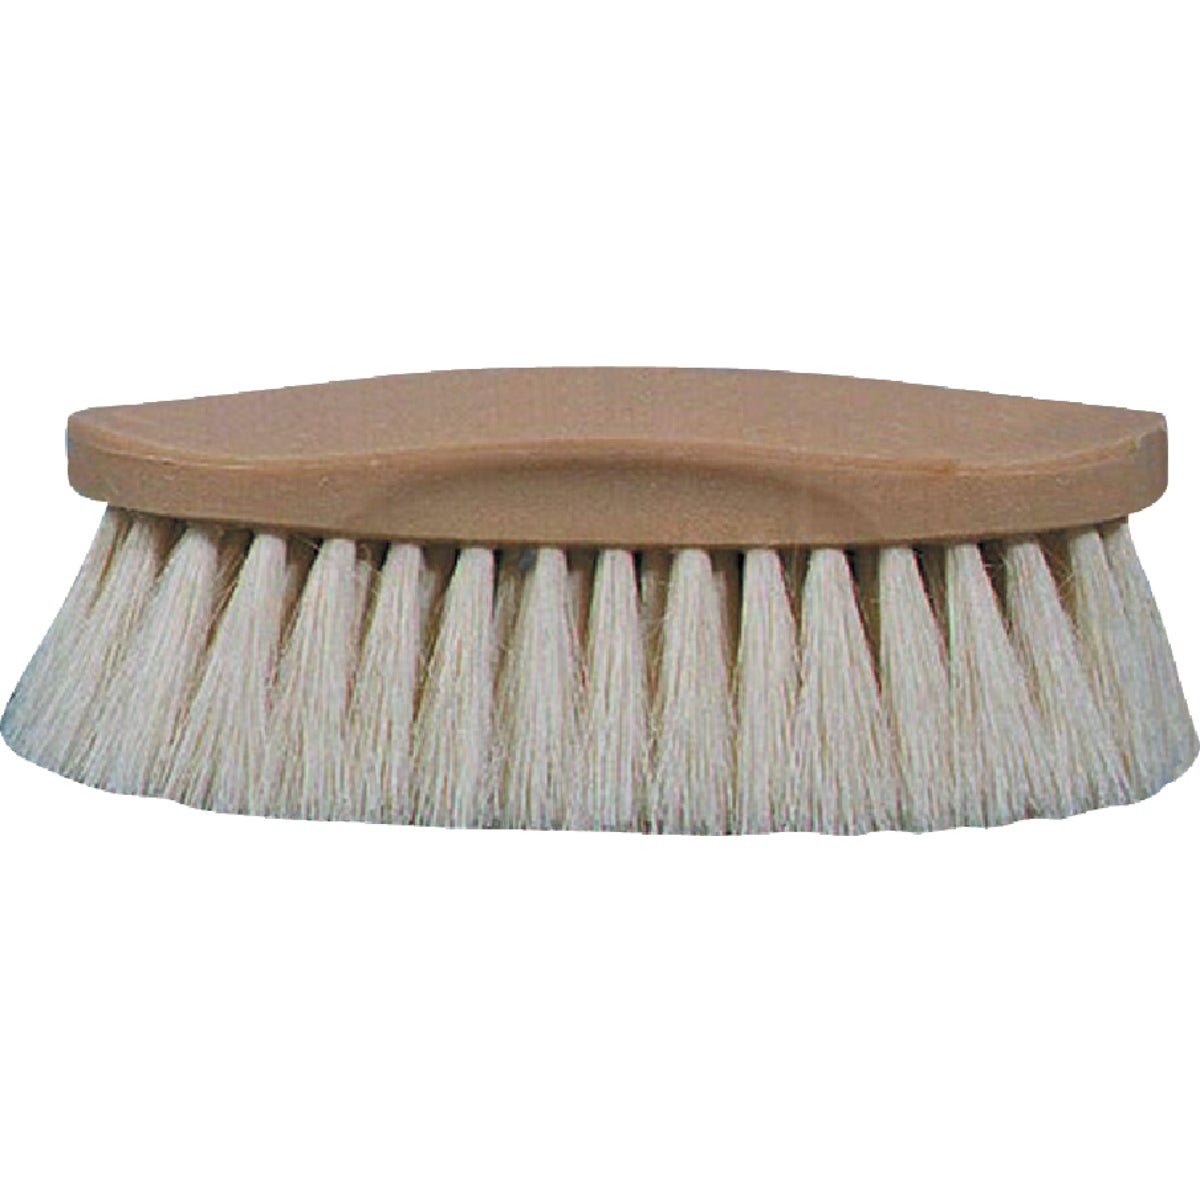 NATURAL TAMPICO BRUSH